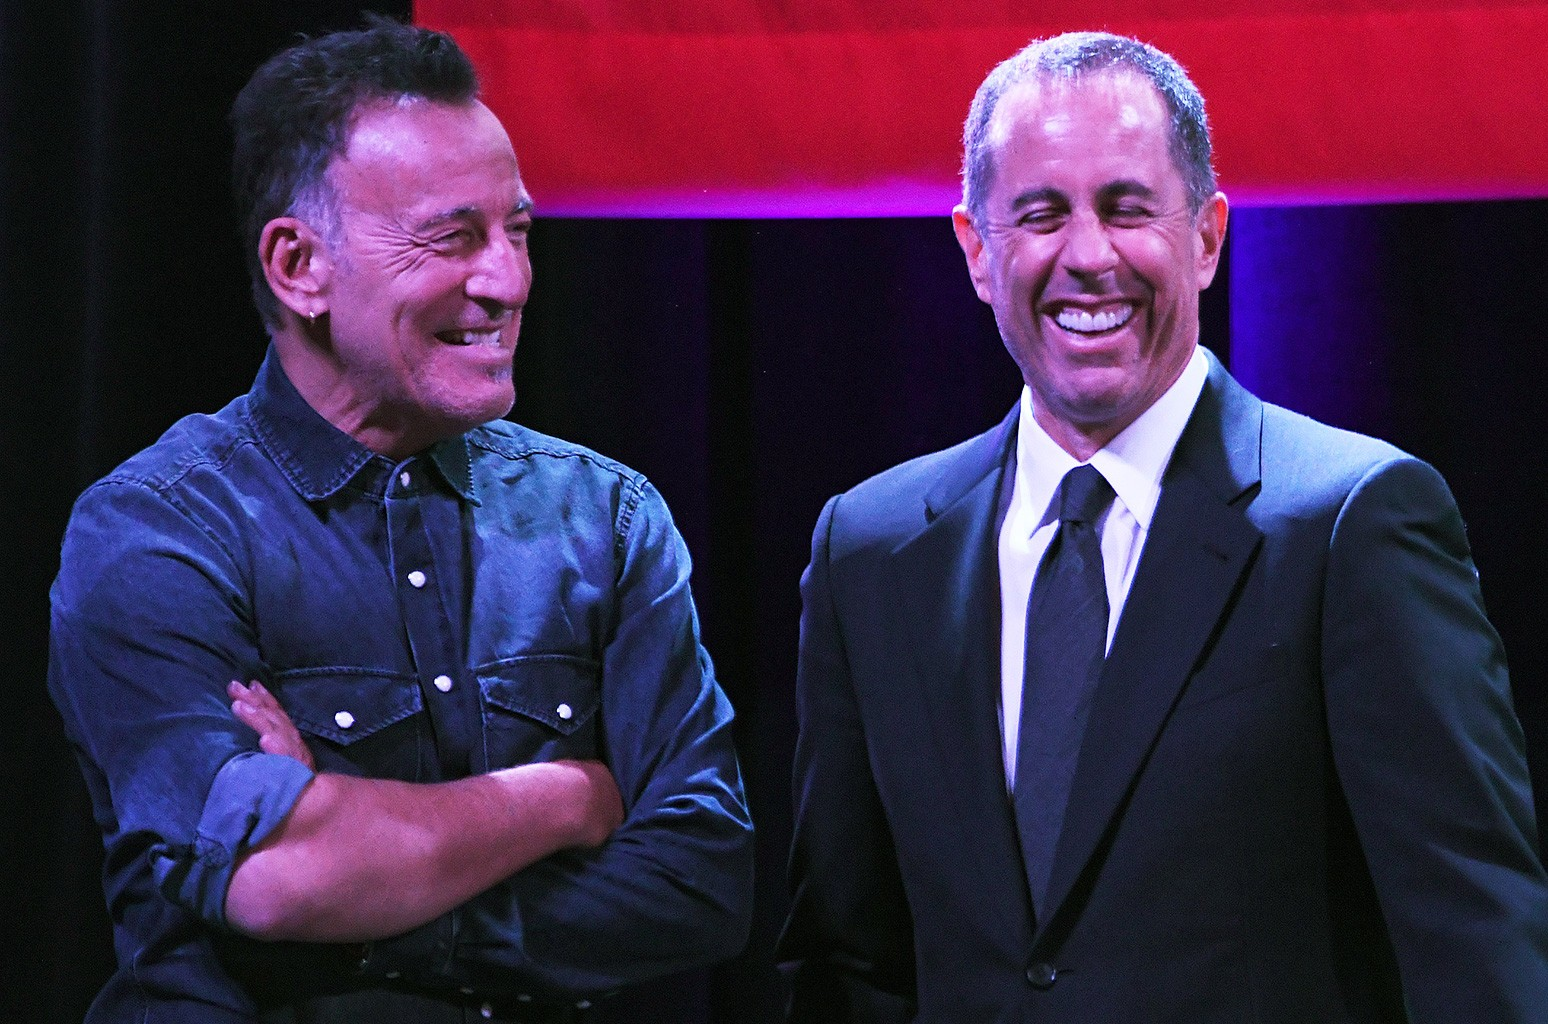 Bruce Springsteen and Jerry Seinfeld